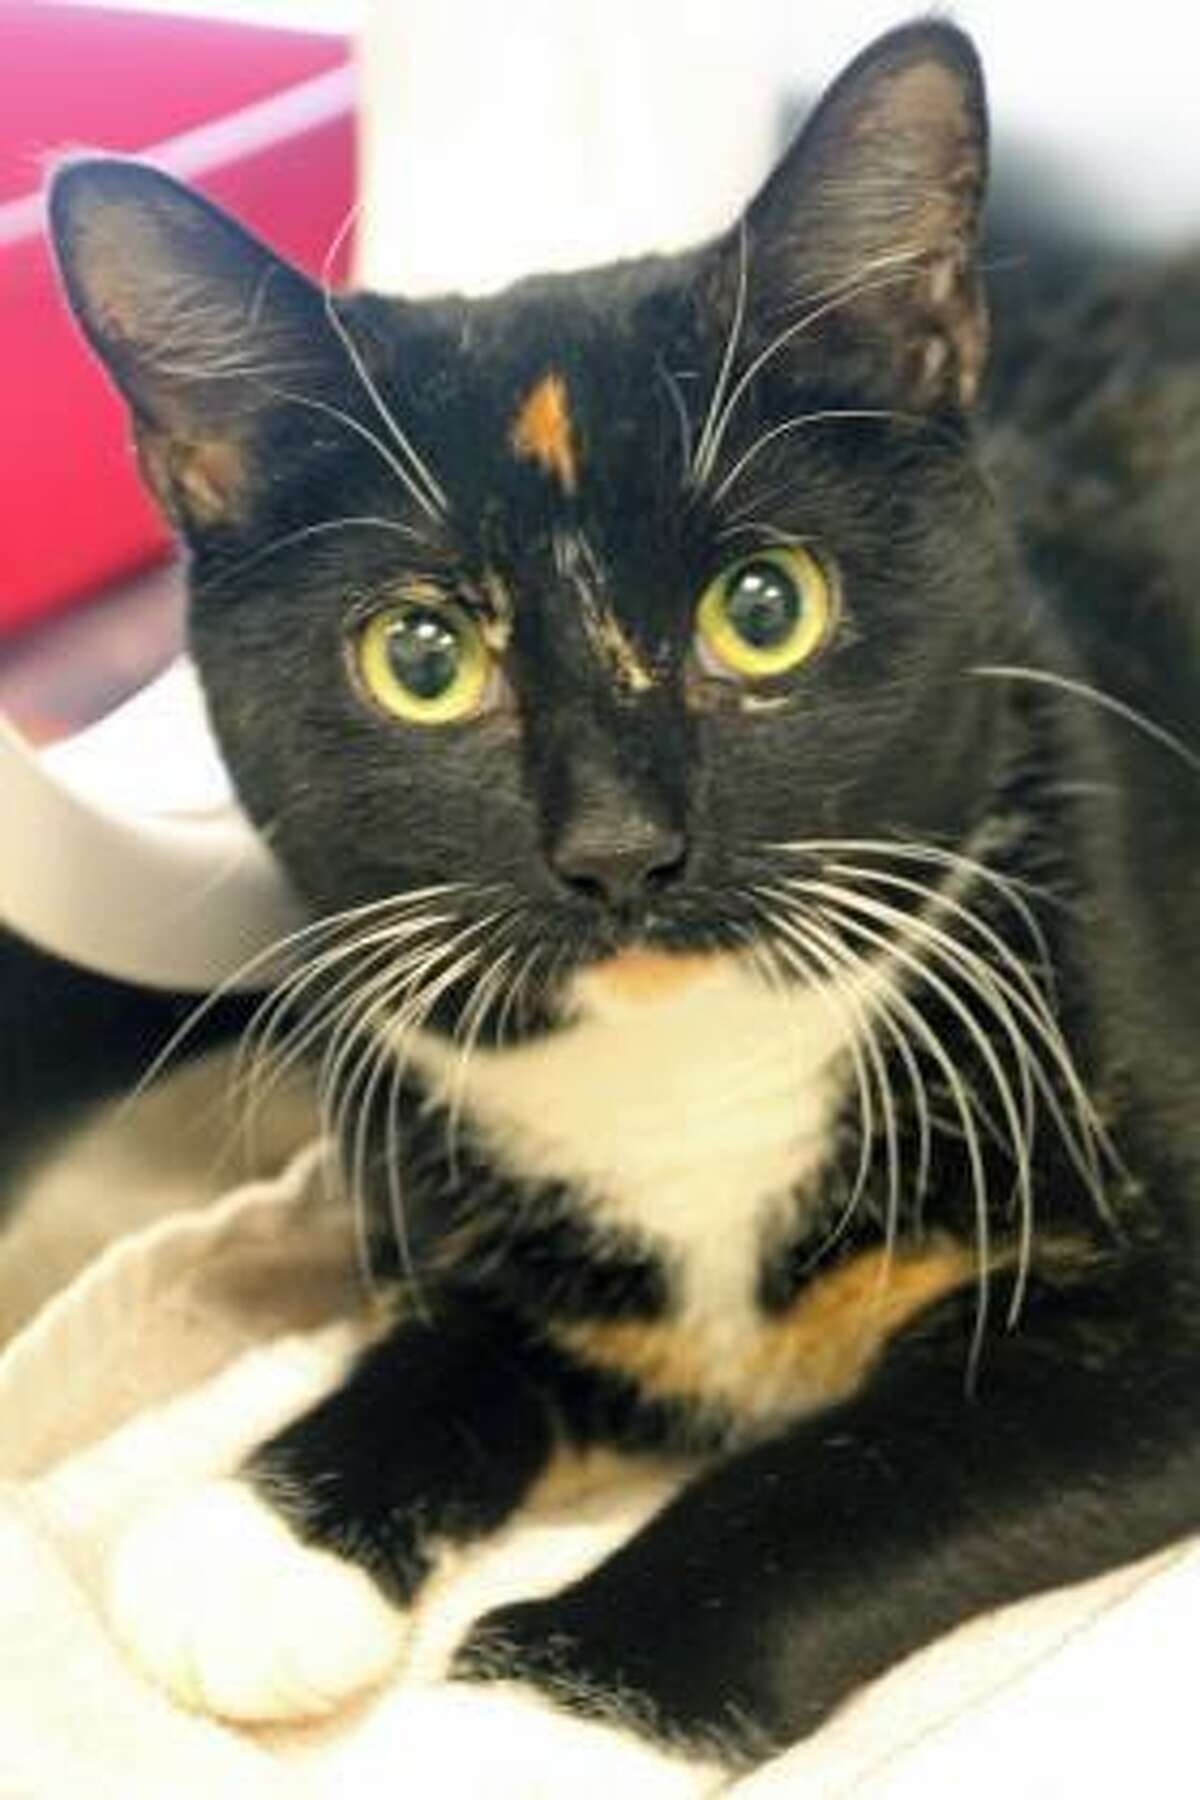 Penny Lane is waiting for a new home.